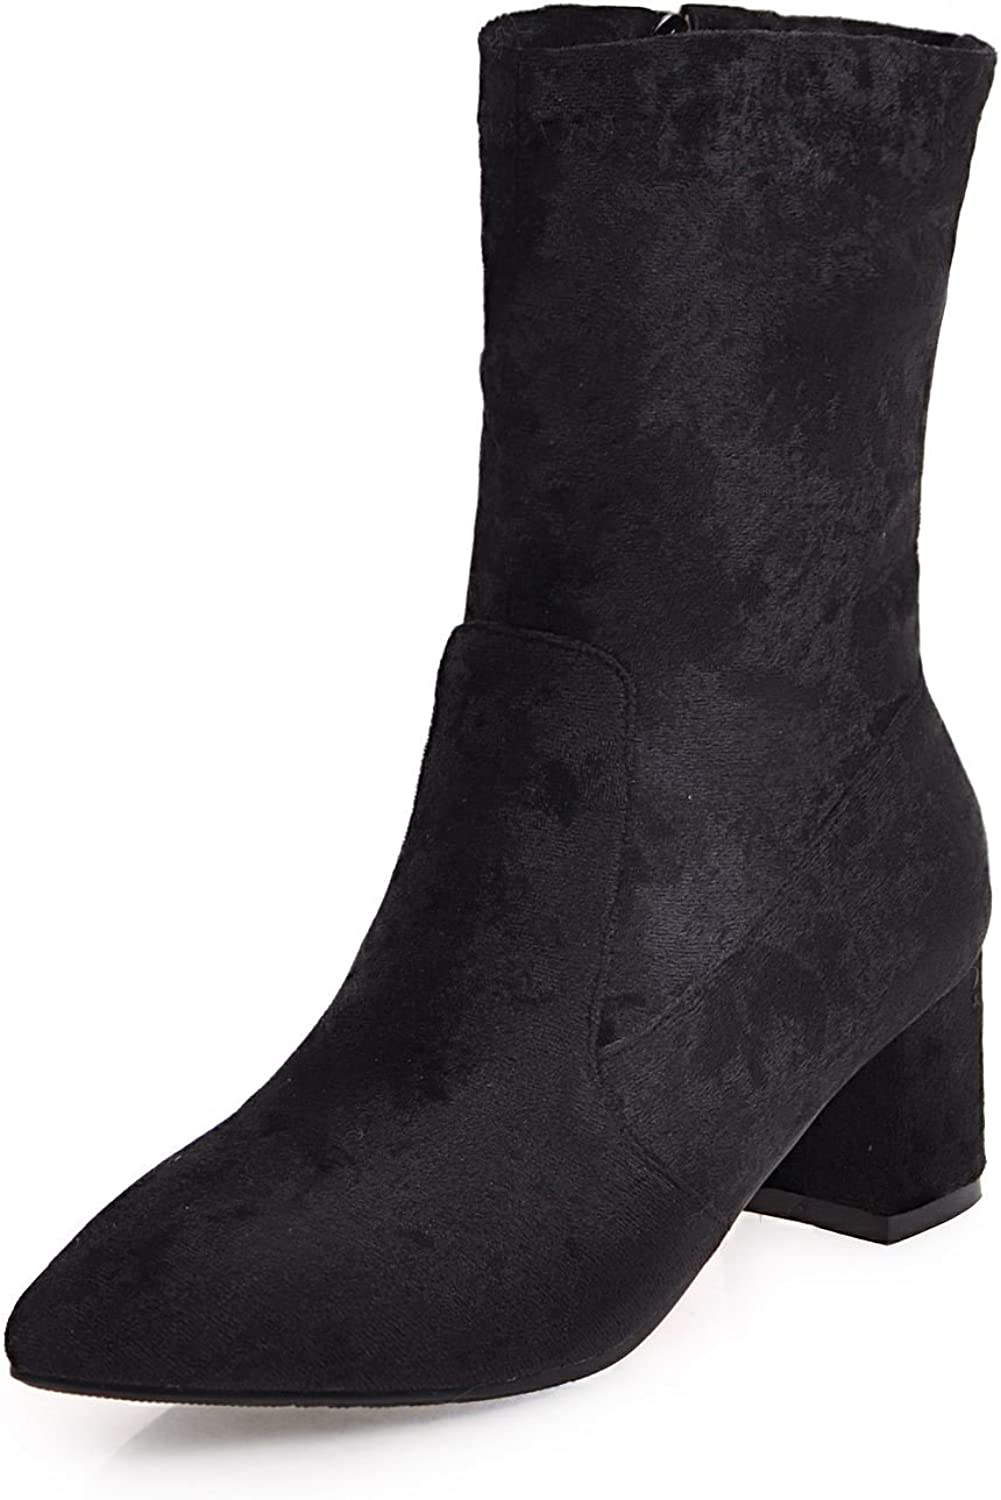 DoraTasia Leisure Suede Mid Calf Thick Heel Women's Pointed Toe Boots